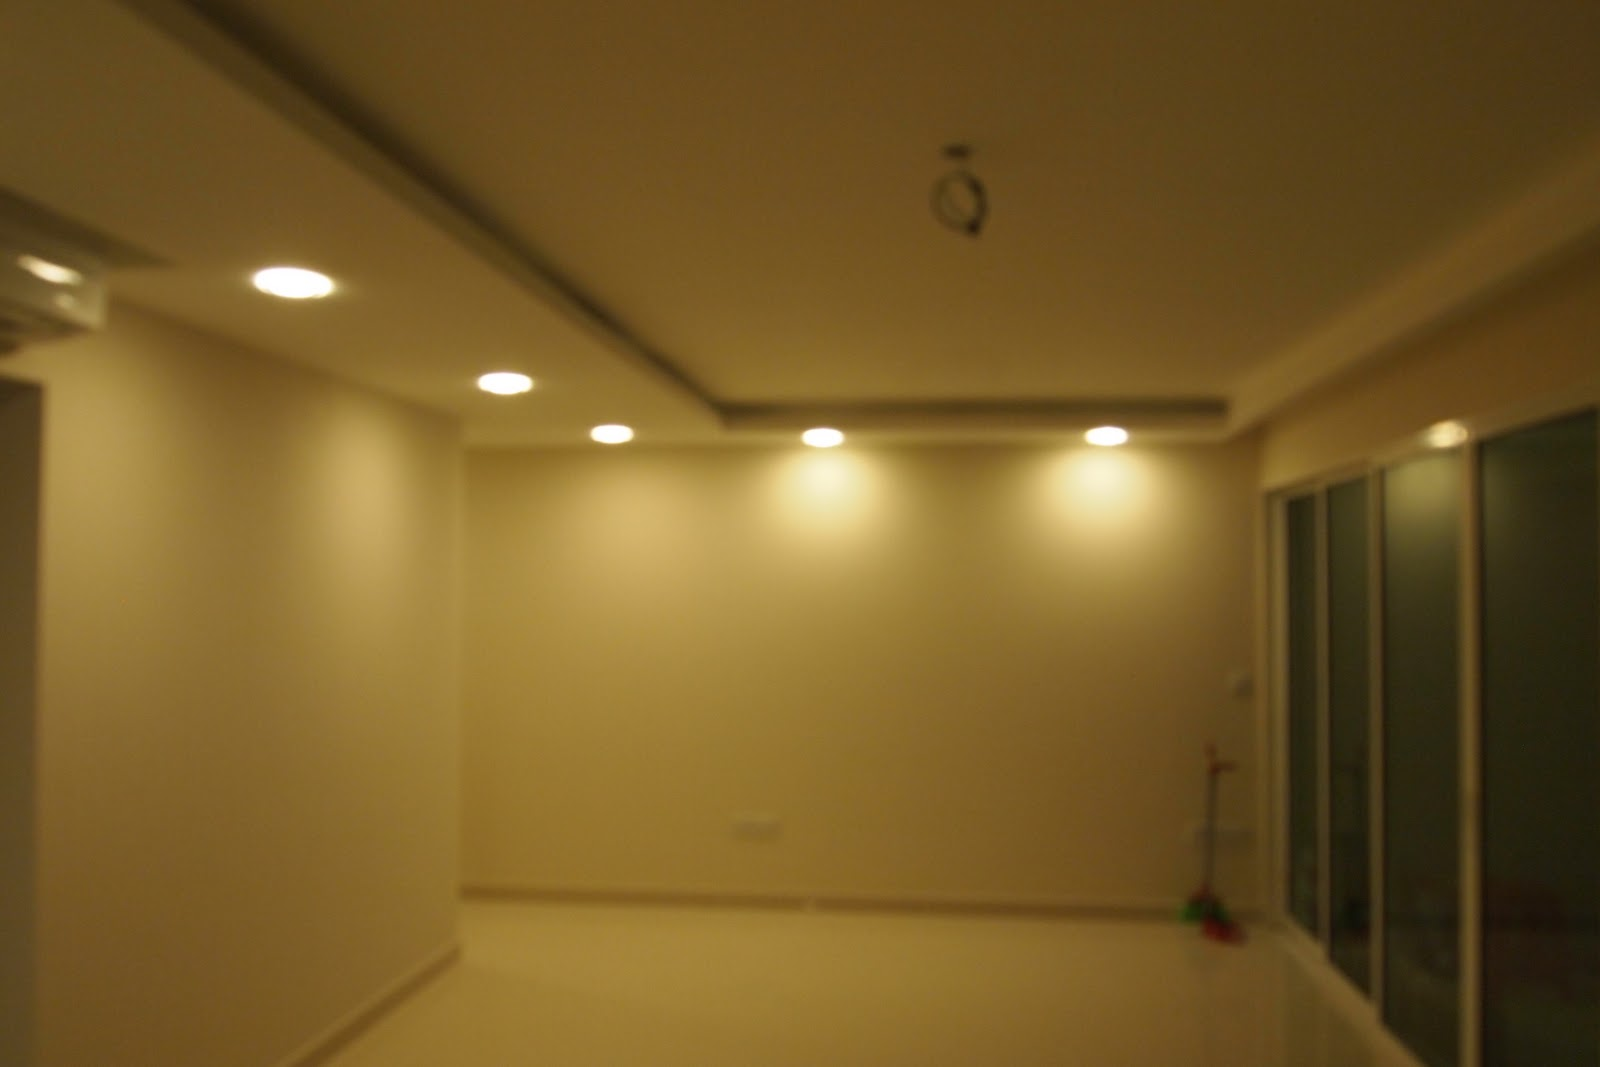 ceiling cove lighting. Park Central Living Room Cove Lighting Ceiling C